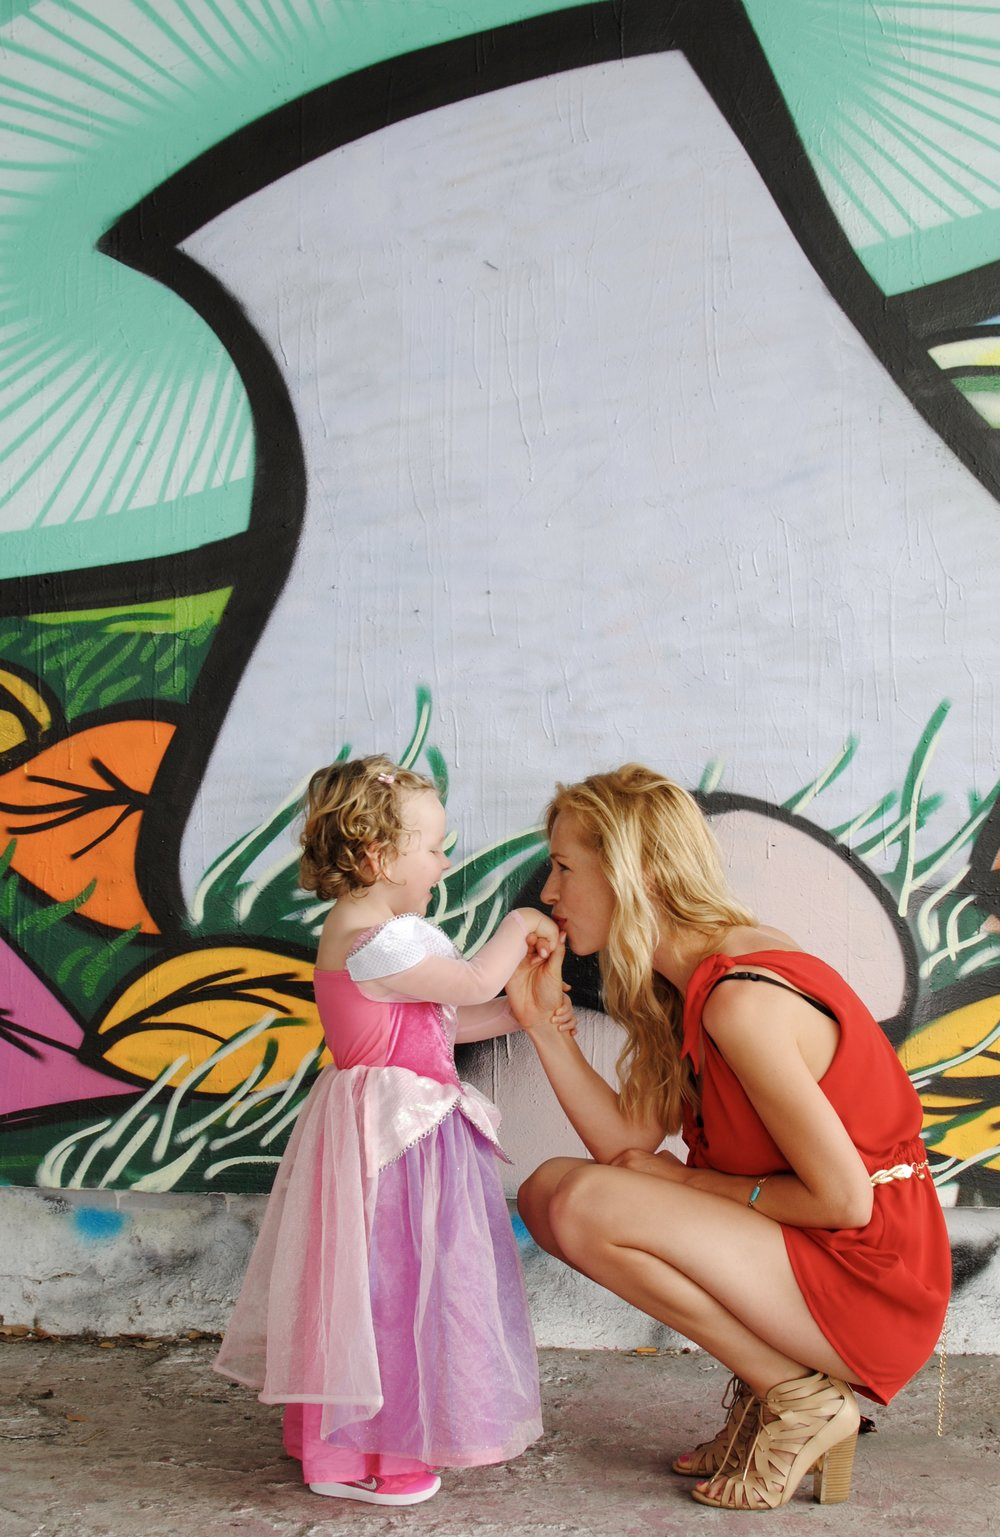 I LOVED Wynwood Art District in Miami and its quirky street art! And yes I let Sisi match those fluo pink Nikes with her Sleeping Beauty dress 😝.